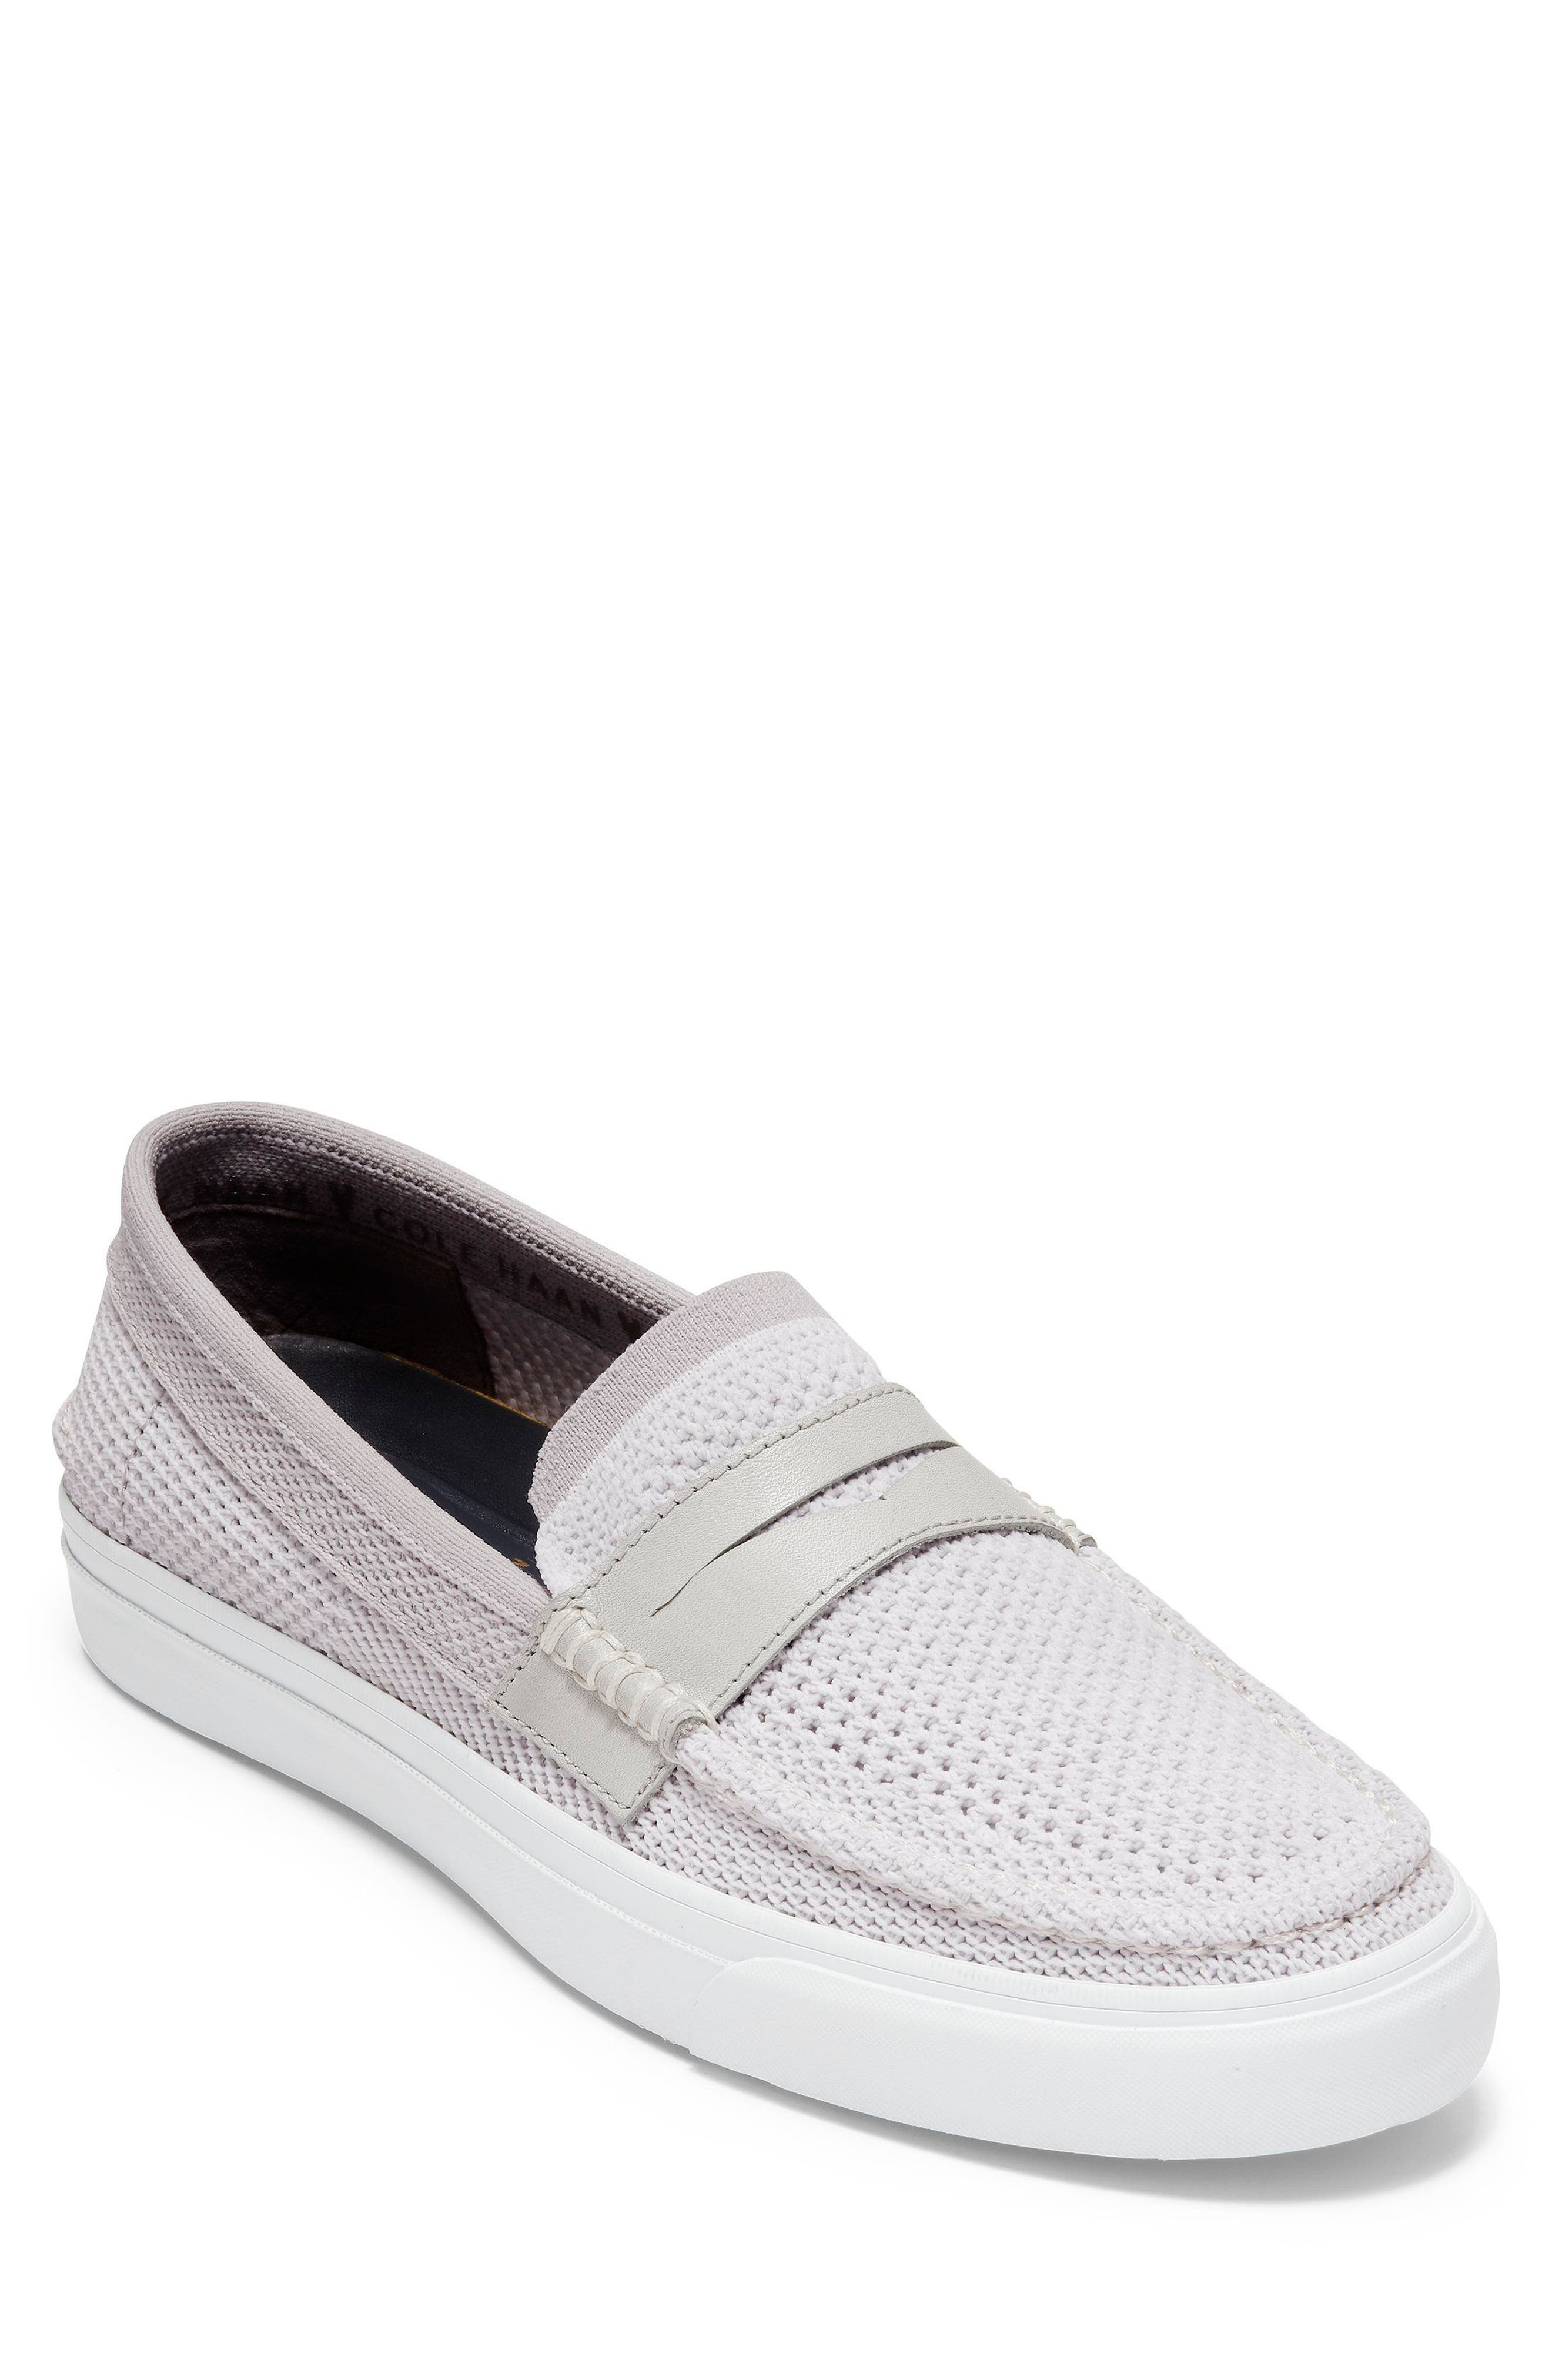 Pinch Stitch LX Stitchlite<sup>™</sup> Penny Loafer,                             Main thumbnail 1, color,                             Vapor Grey /Optic White